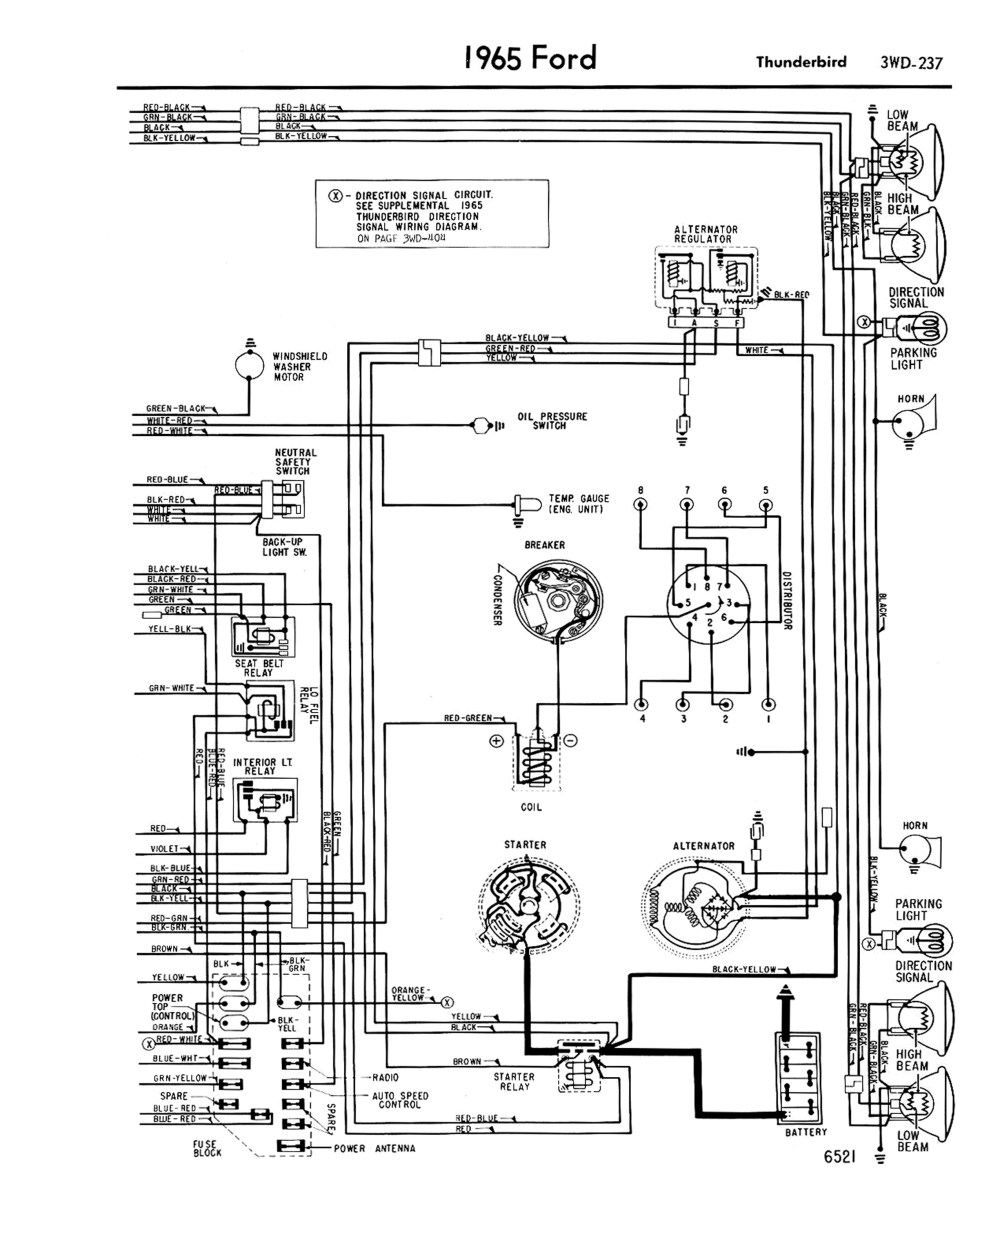 medium resolution of ford thunderbird solenoid diagram simple wiring schema 1986 ford thunderbird interior 1968 ford thunderbird general fuse